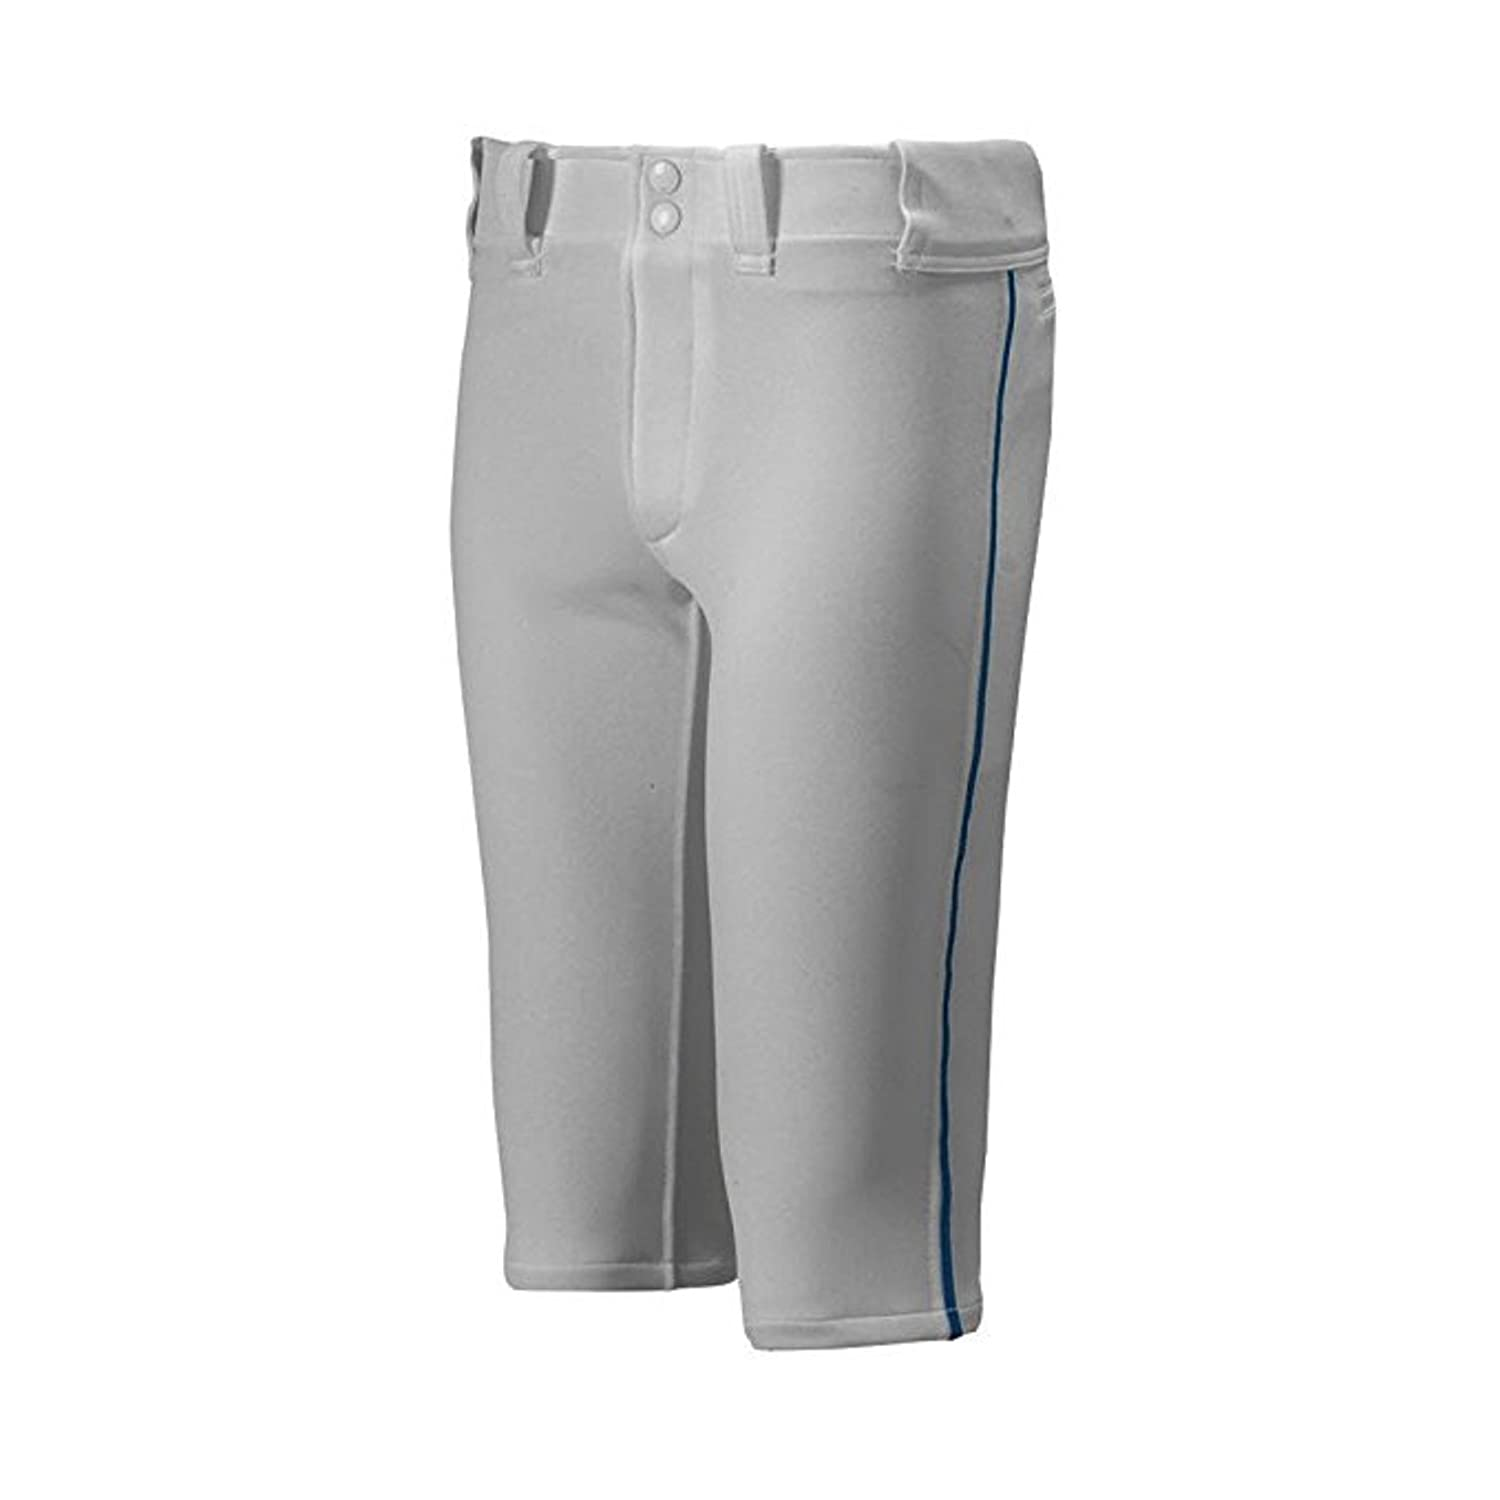 Mizuno Youth Premier Short Piped Pants B00P1QGJLW Small|グレー/ネイビー グレー/ネイビー Small